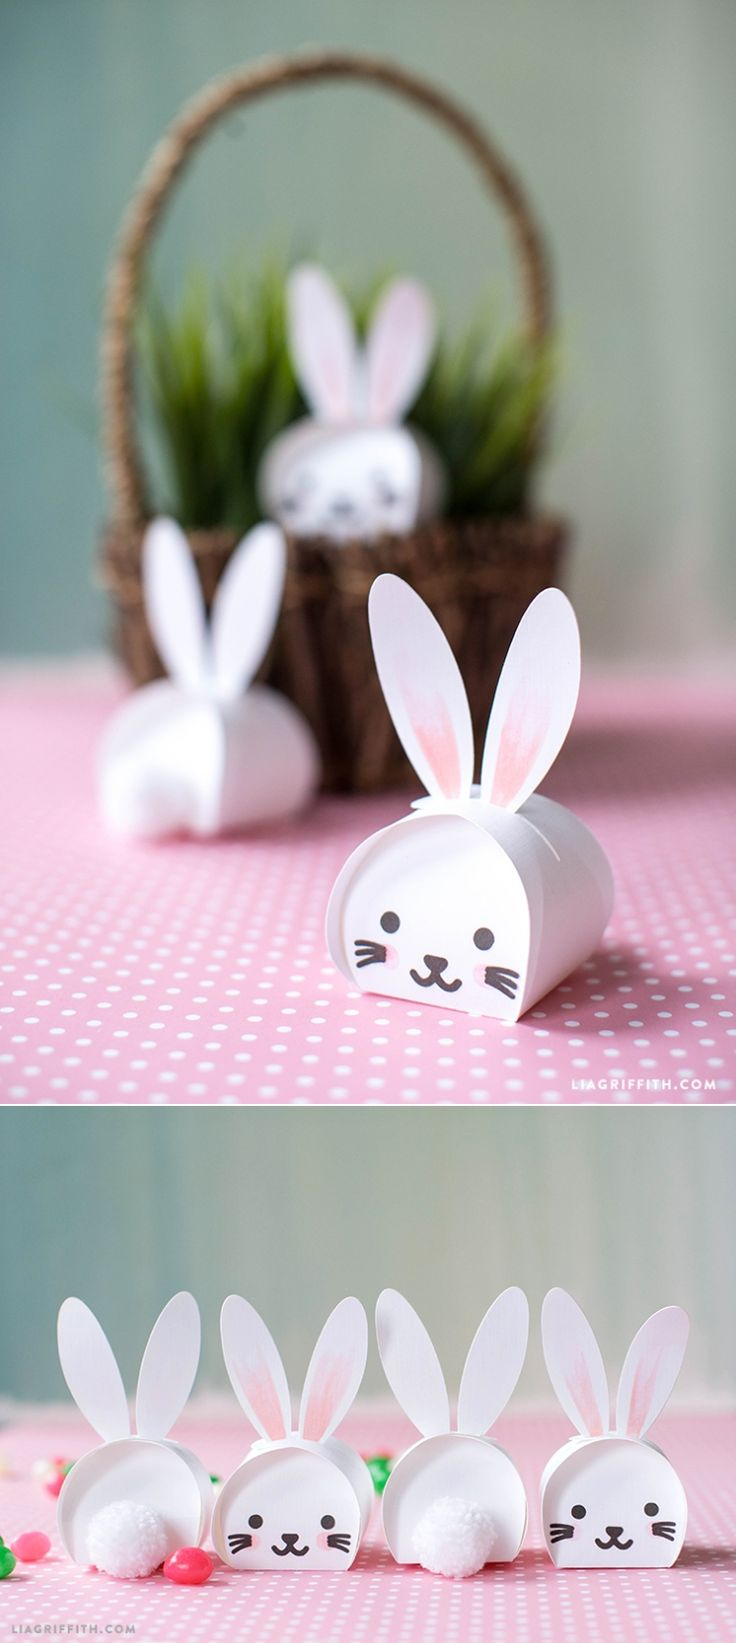 Easter Bunny #treatboxes svg template for your Cricut at www.LiaGriffith.com: